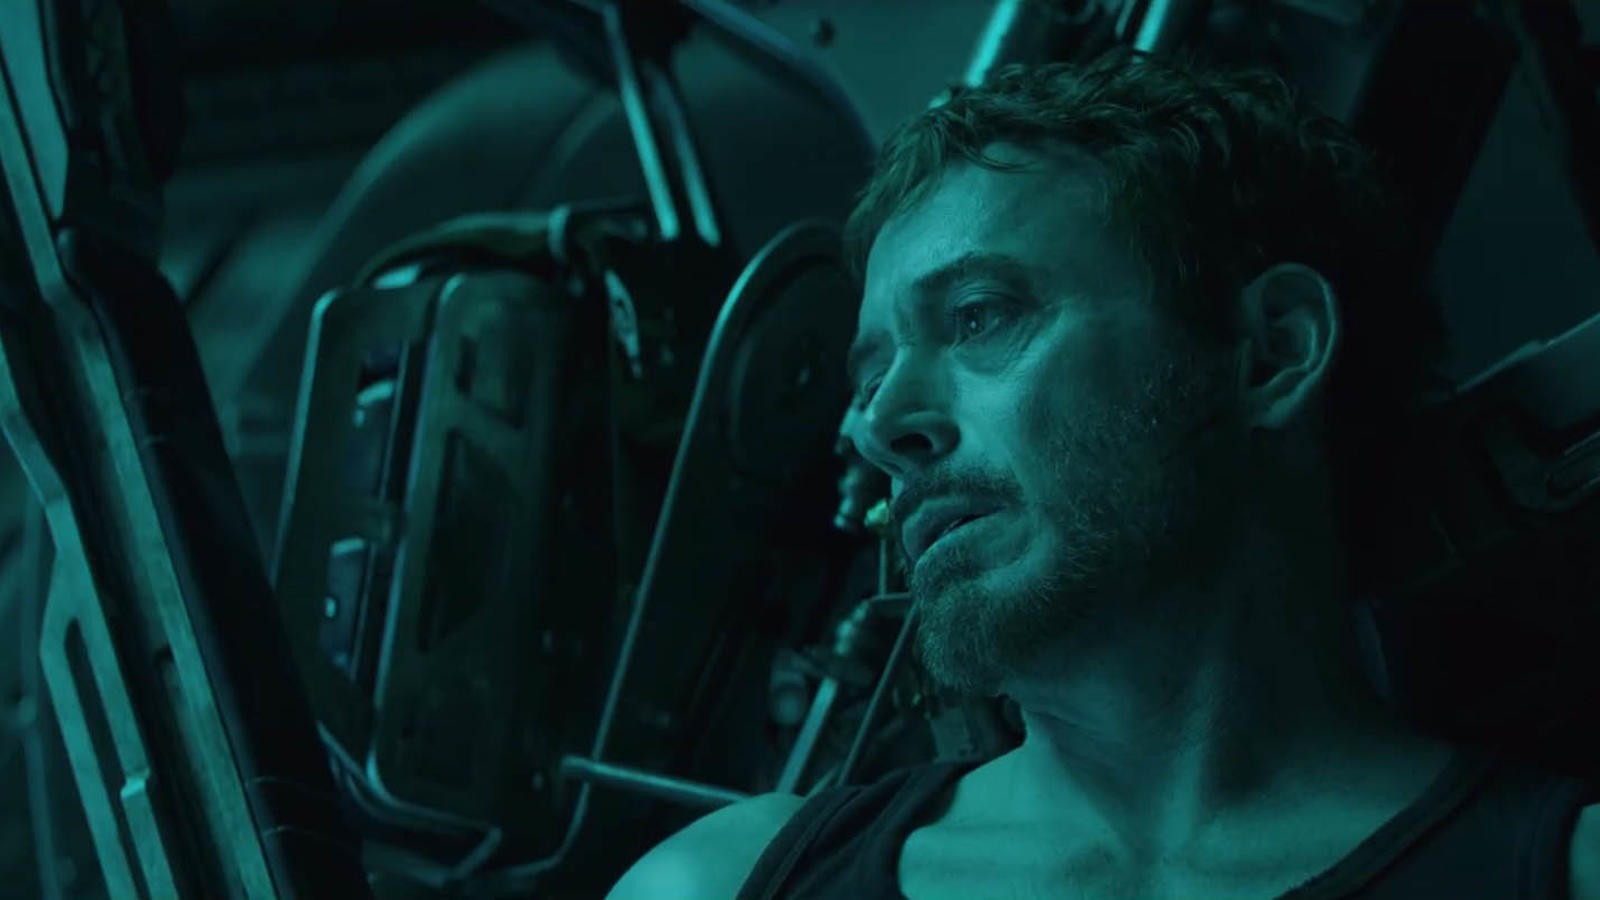 When Can You Get Tickets For Avengers: Endgame